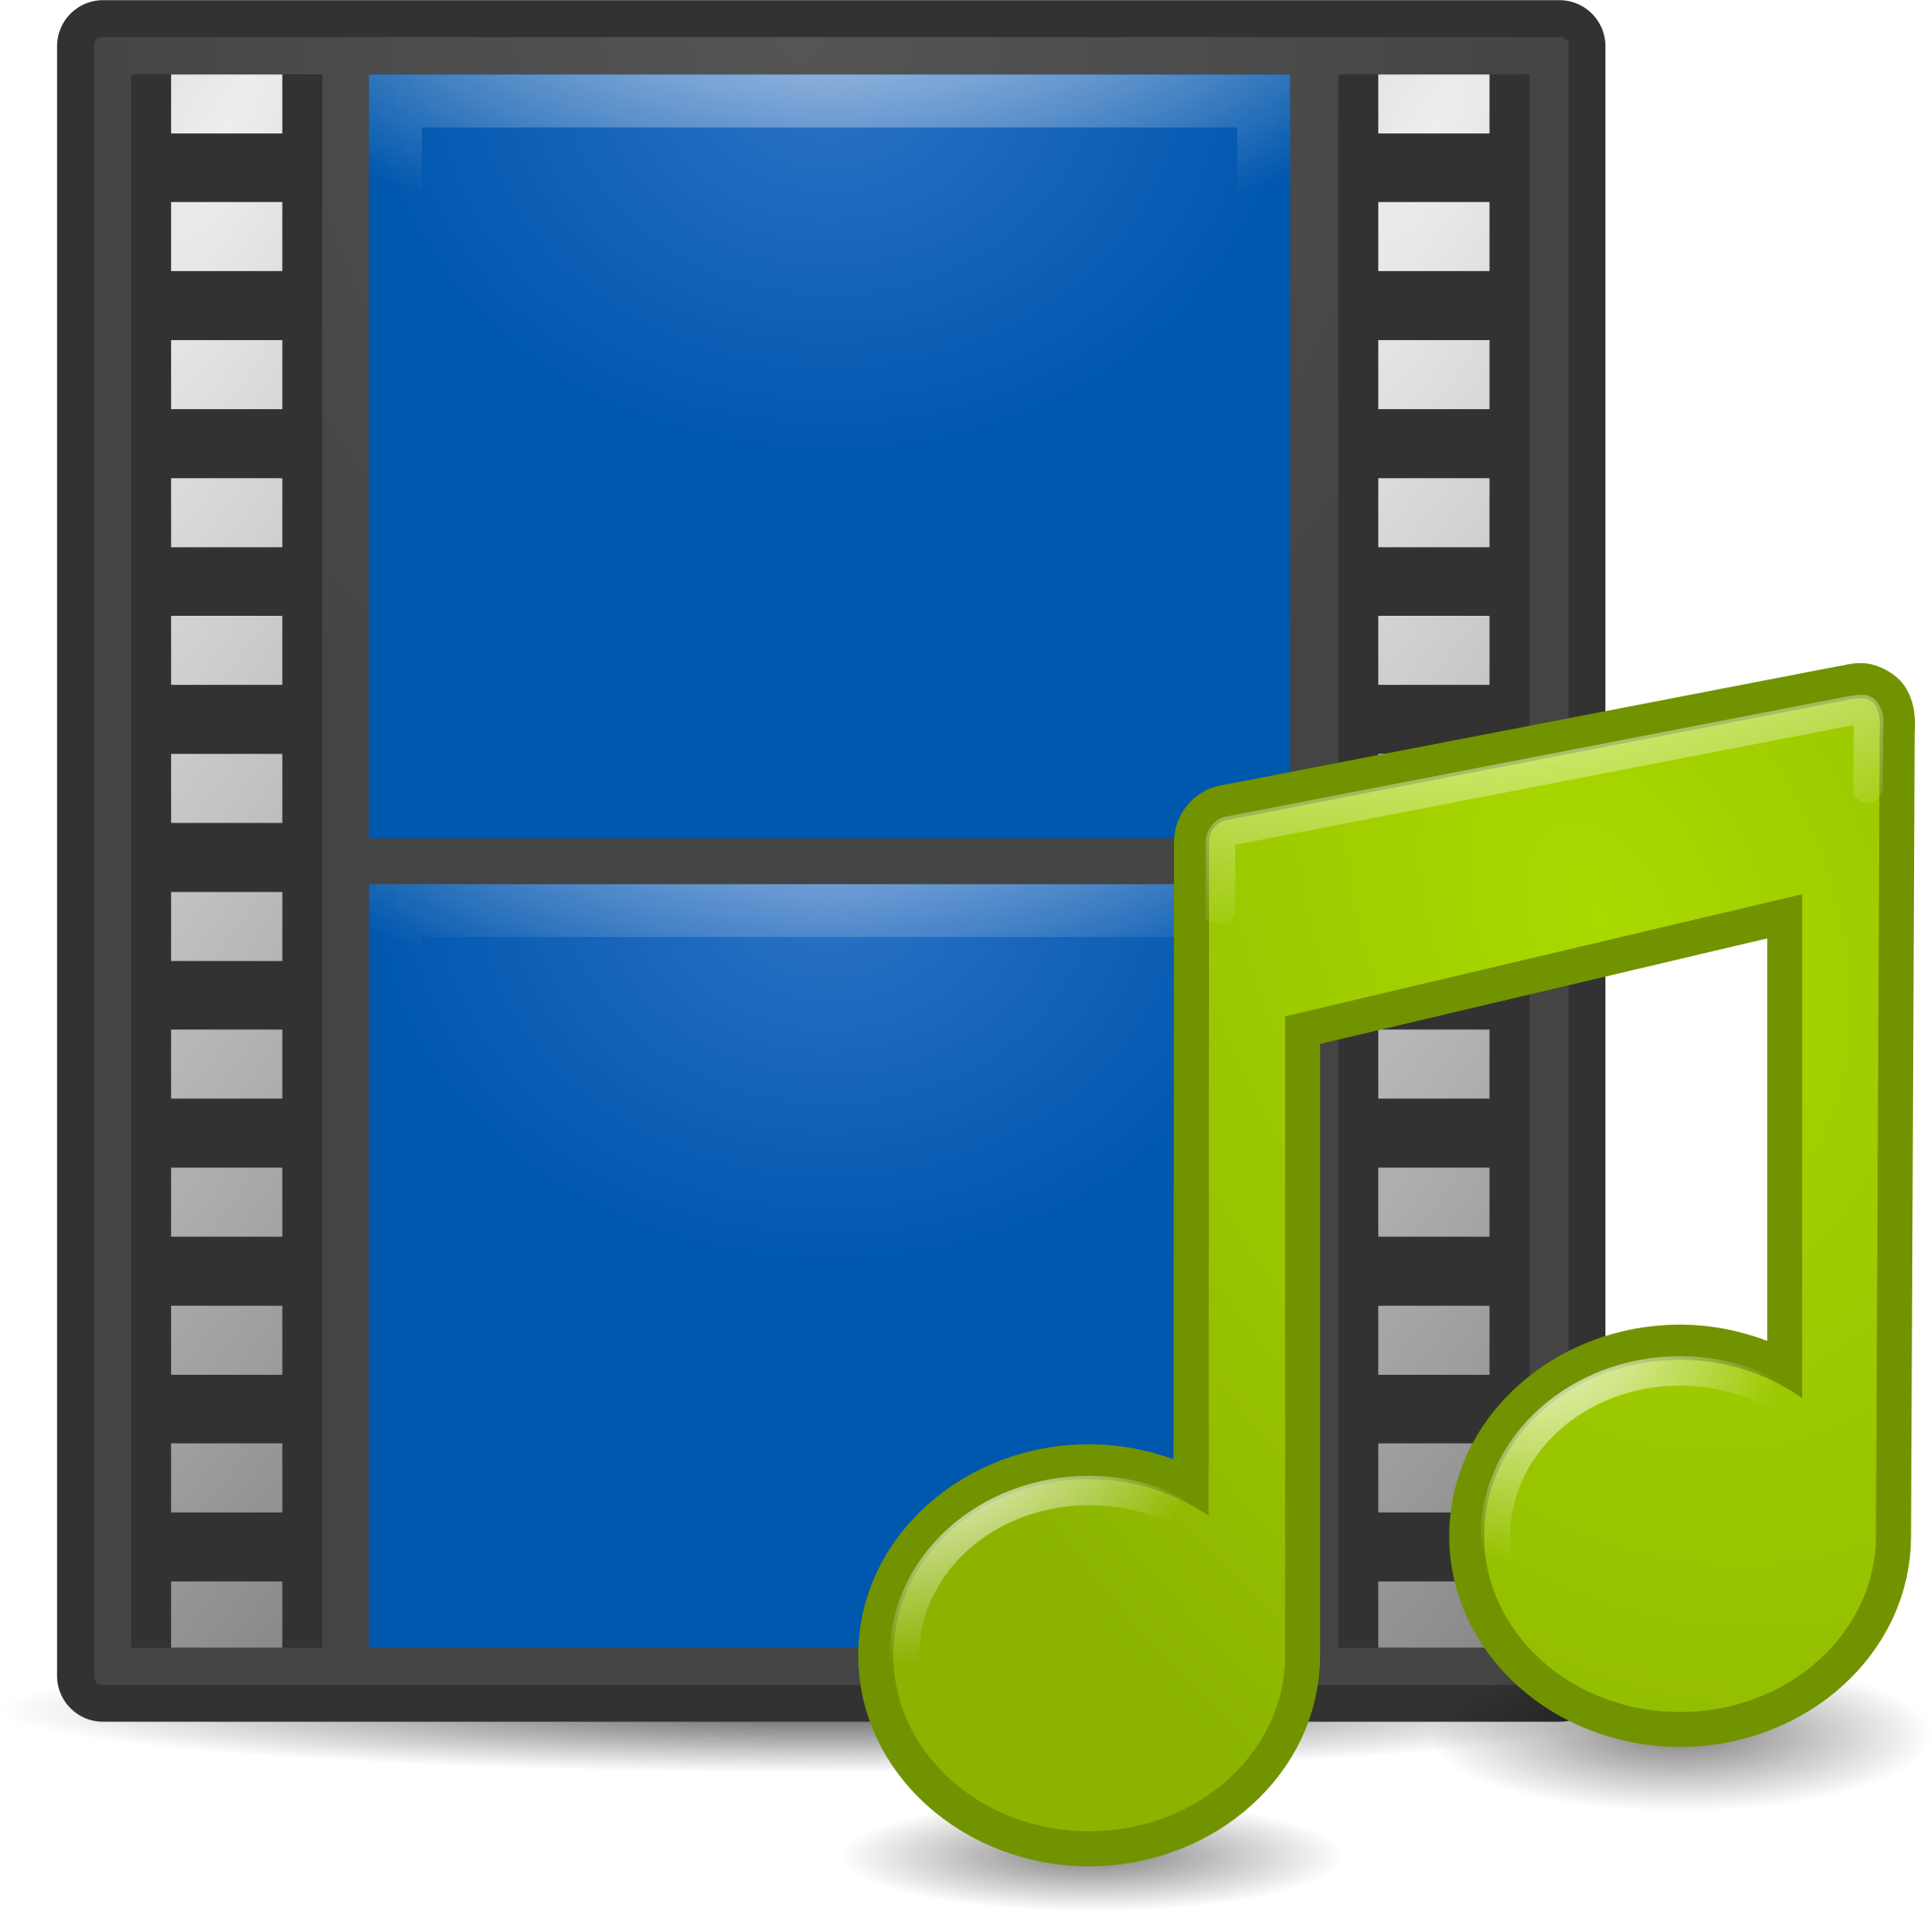 Media player clipart.